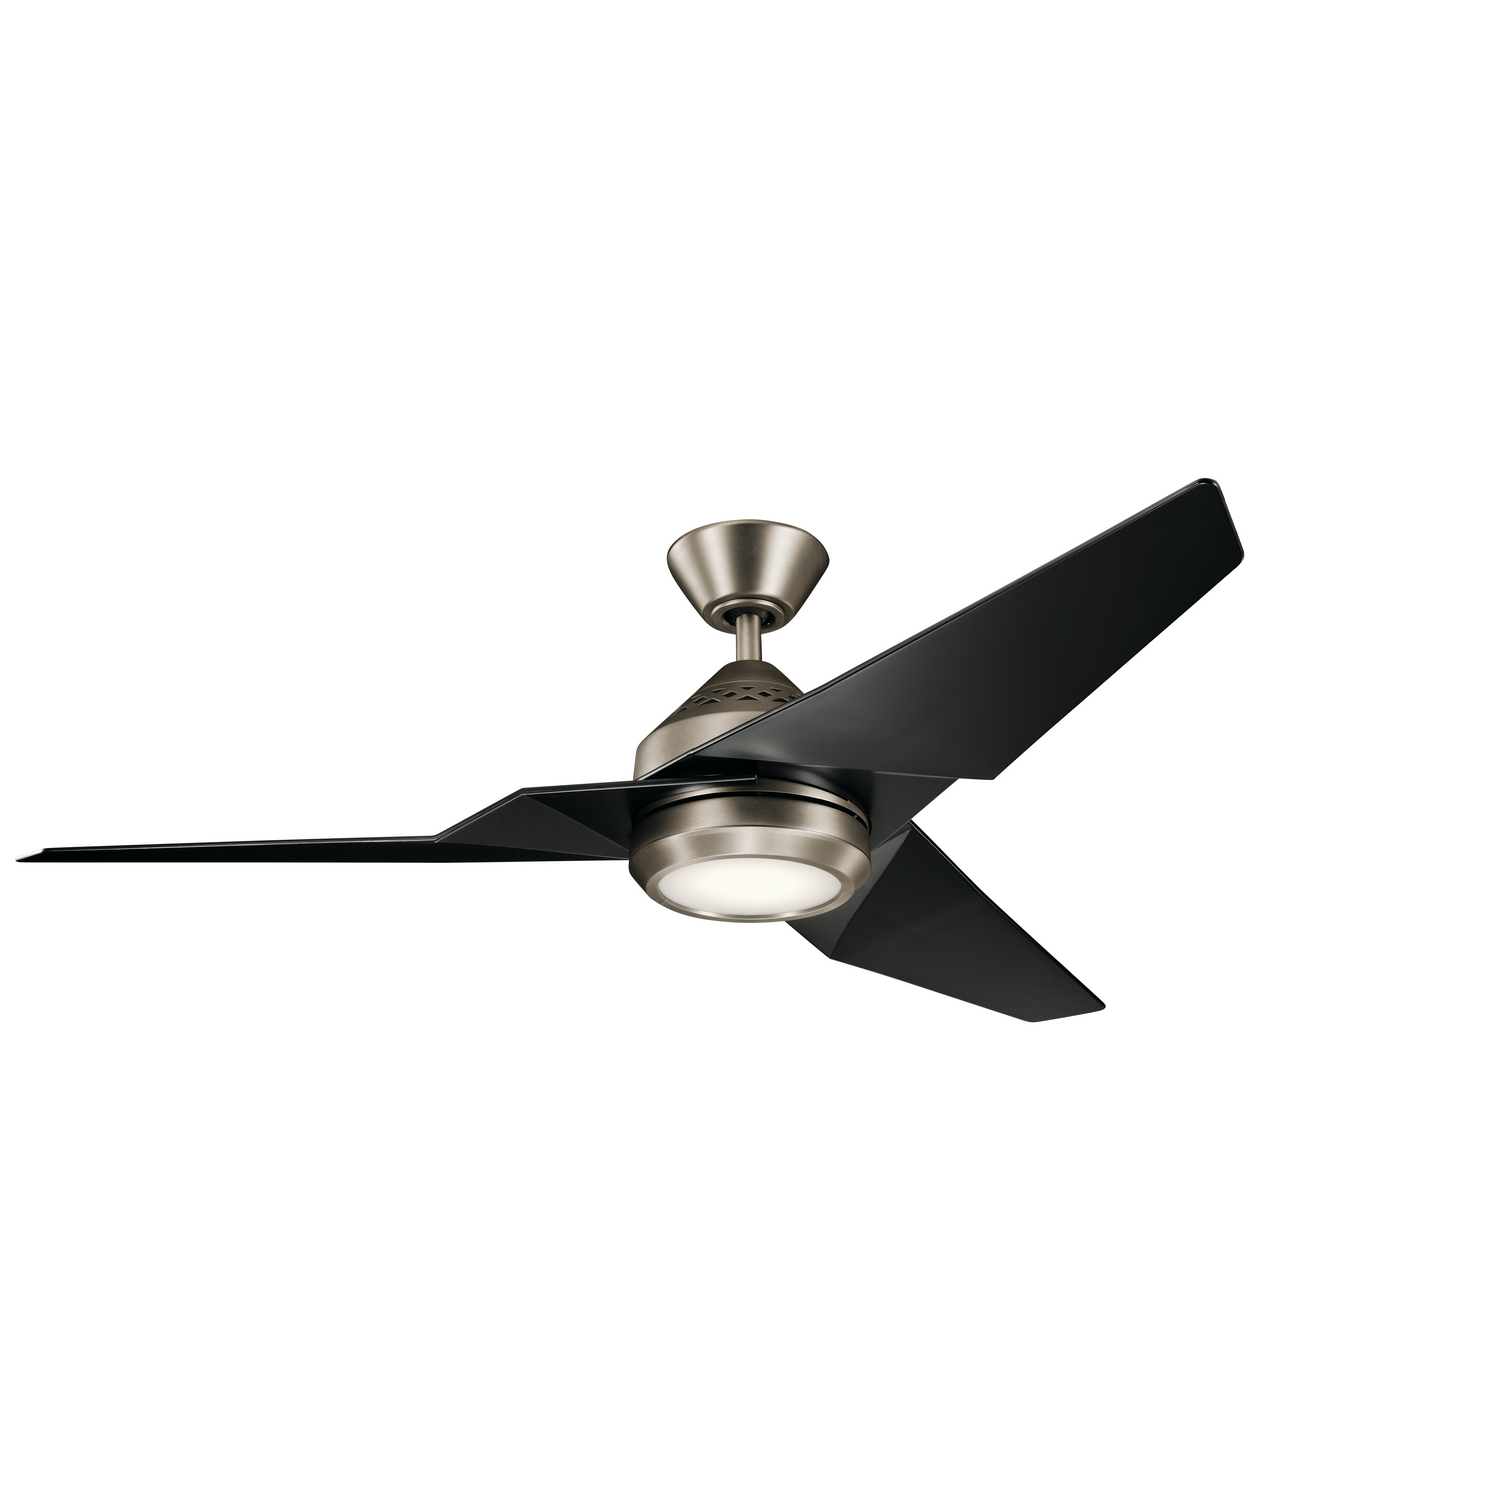 60 inchCeiling Fan from the Jade collection by Kichler 300030AP